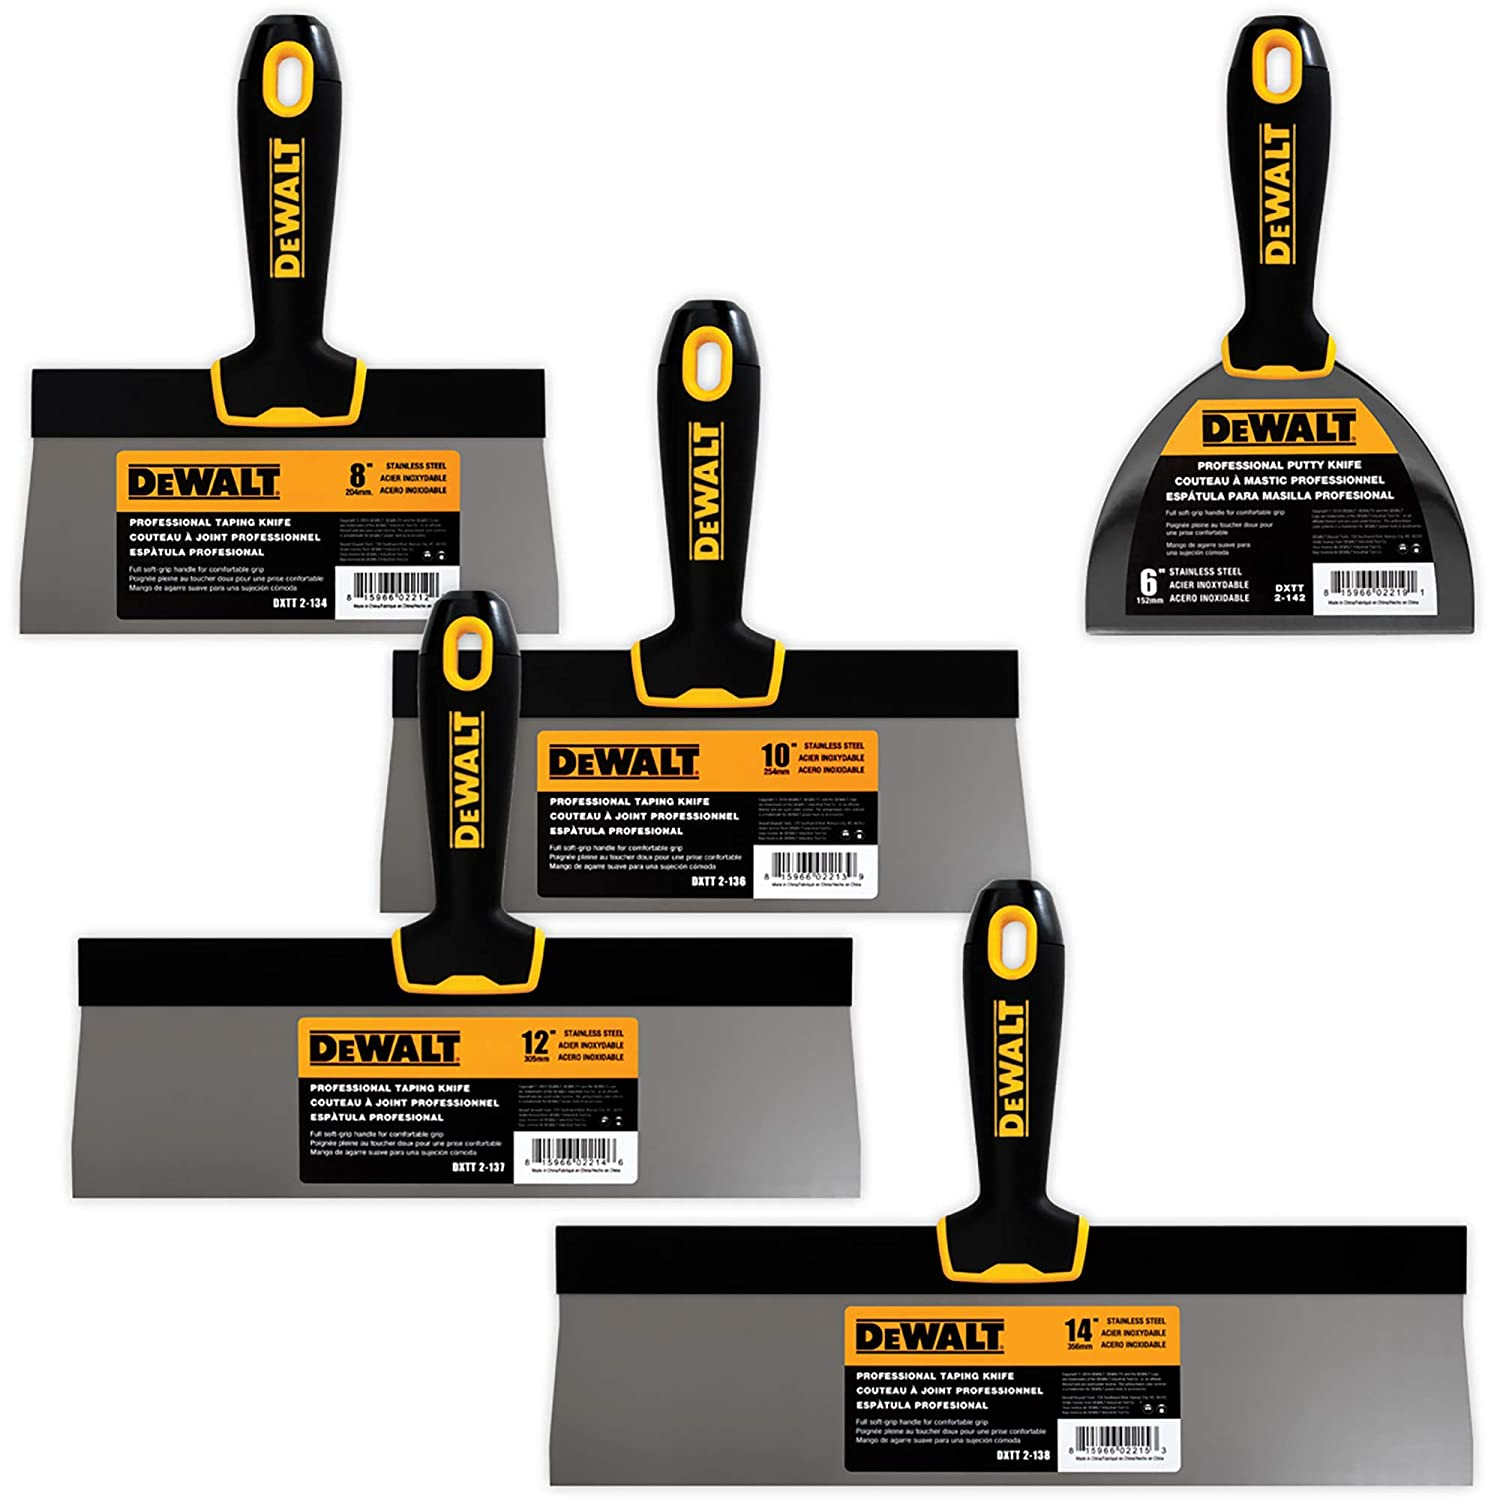 "DEWALT Stainless Steel Taping Knife 4-Pack + FREE BONUS 6"" Soft Grip Putty Knife 